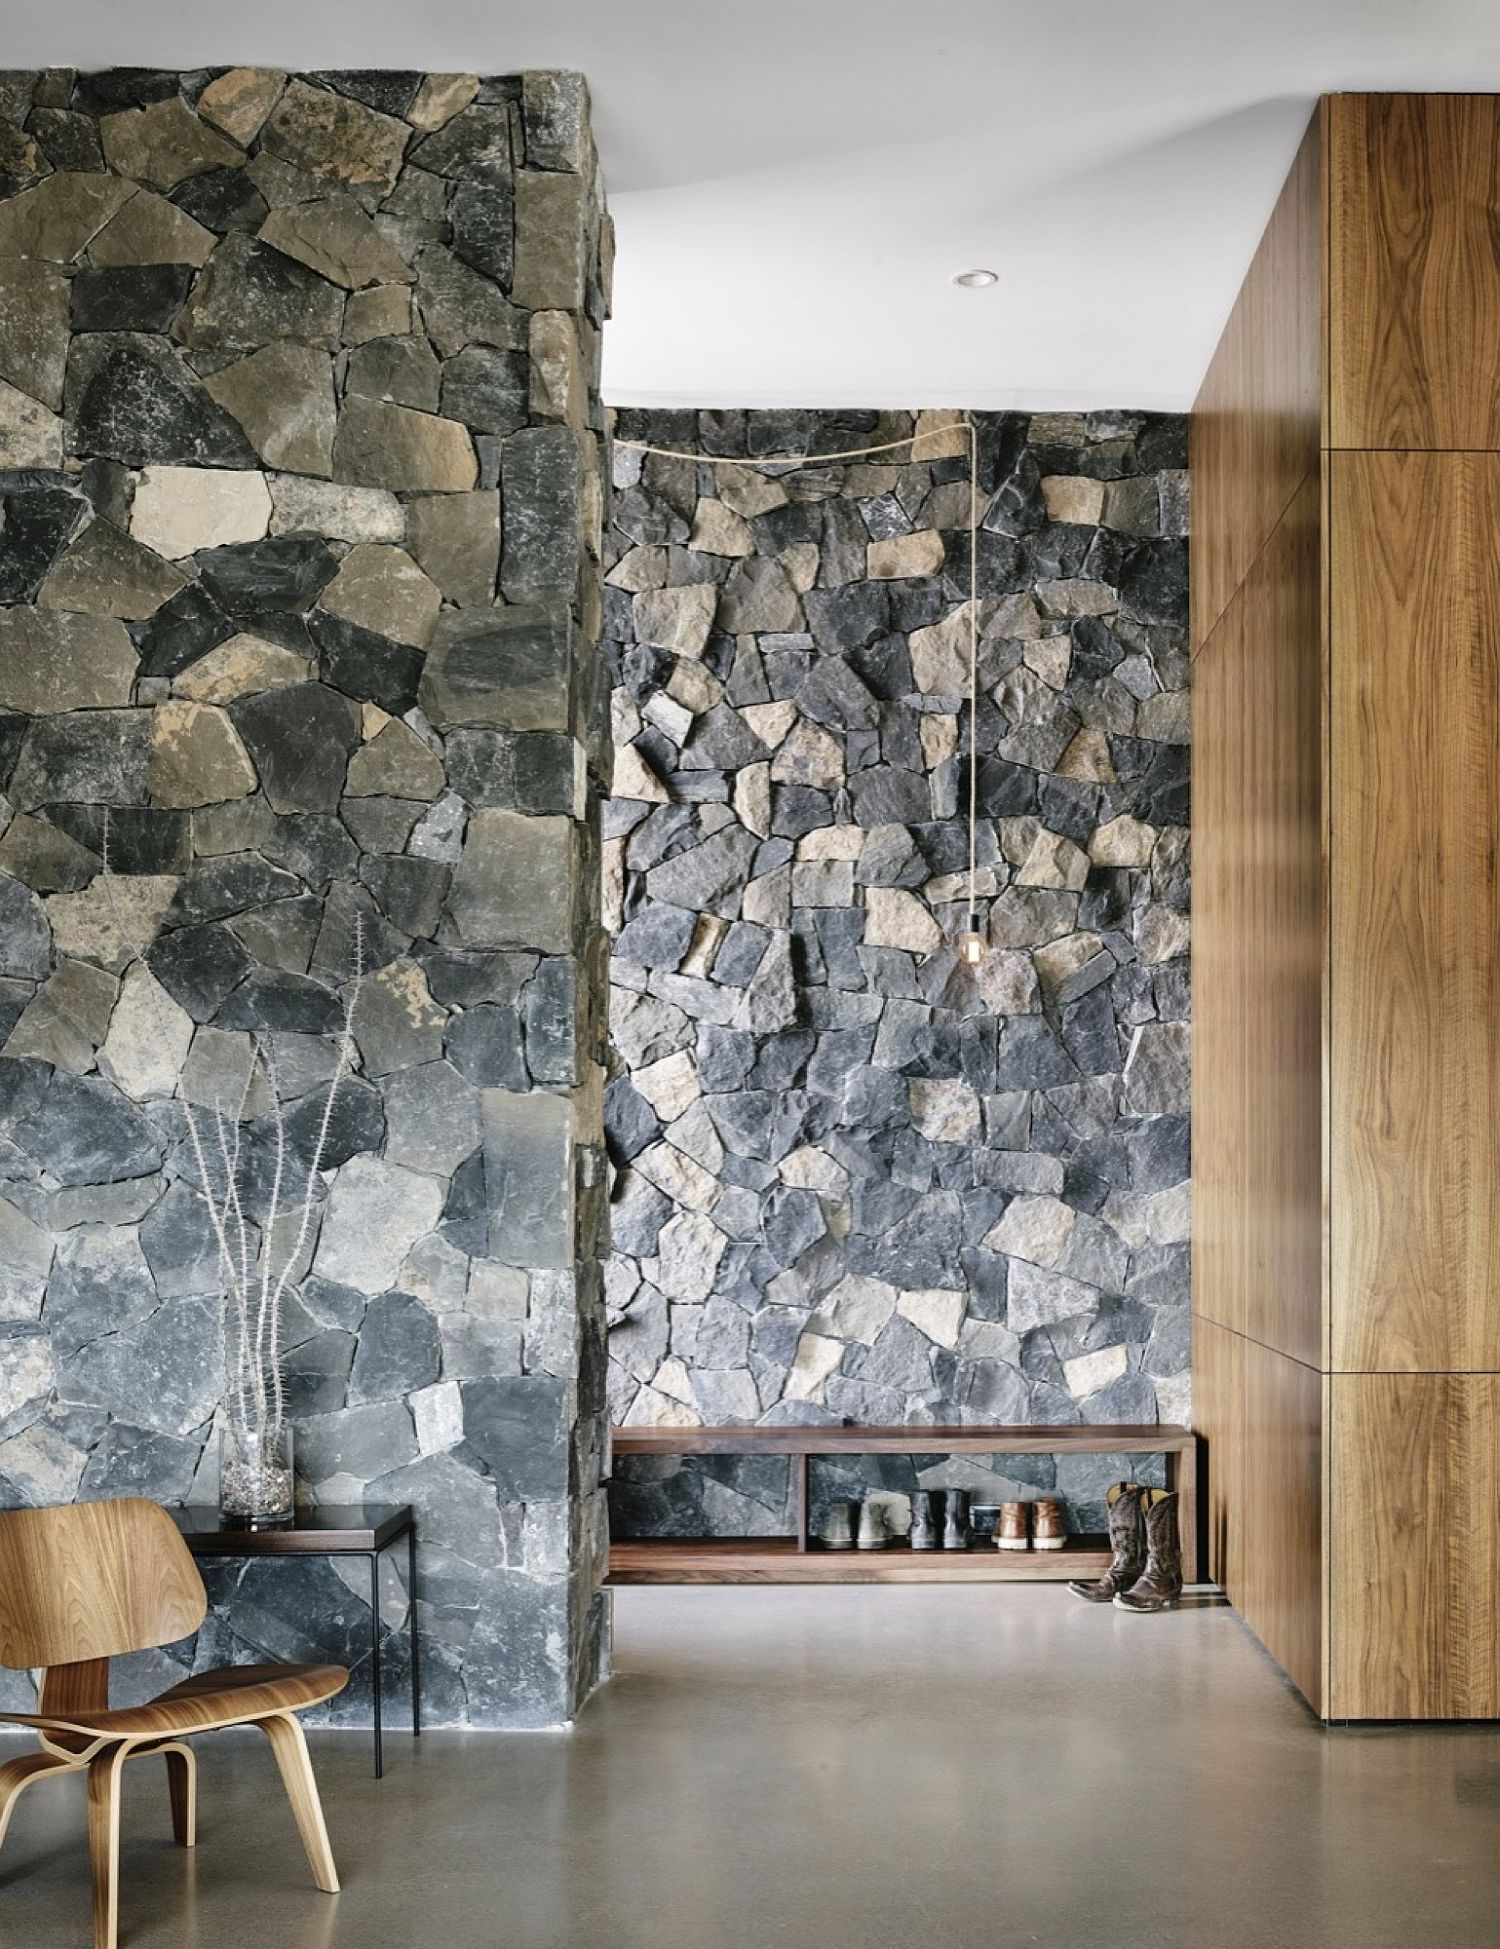 Stone, wood and stucco create a unique and stylish modern home